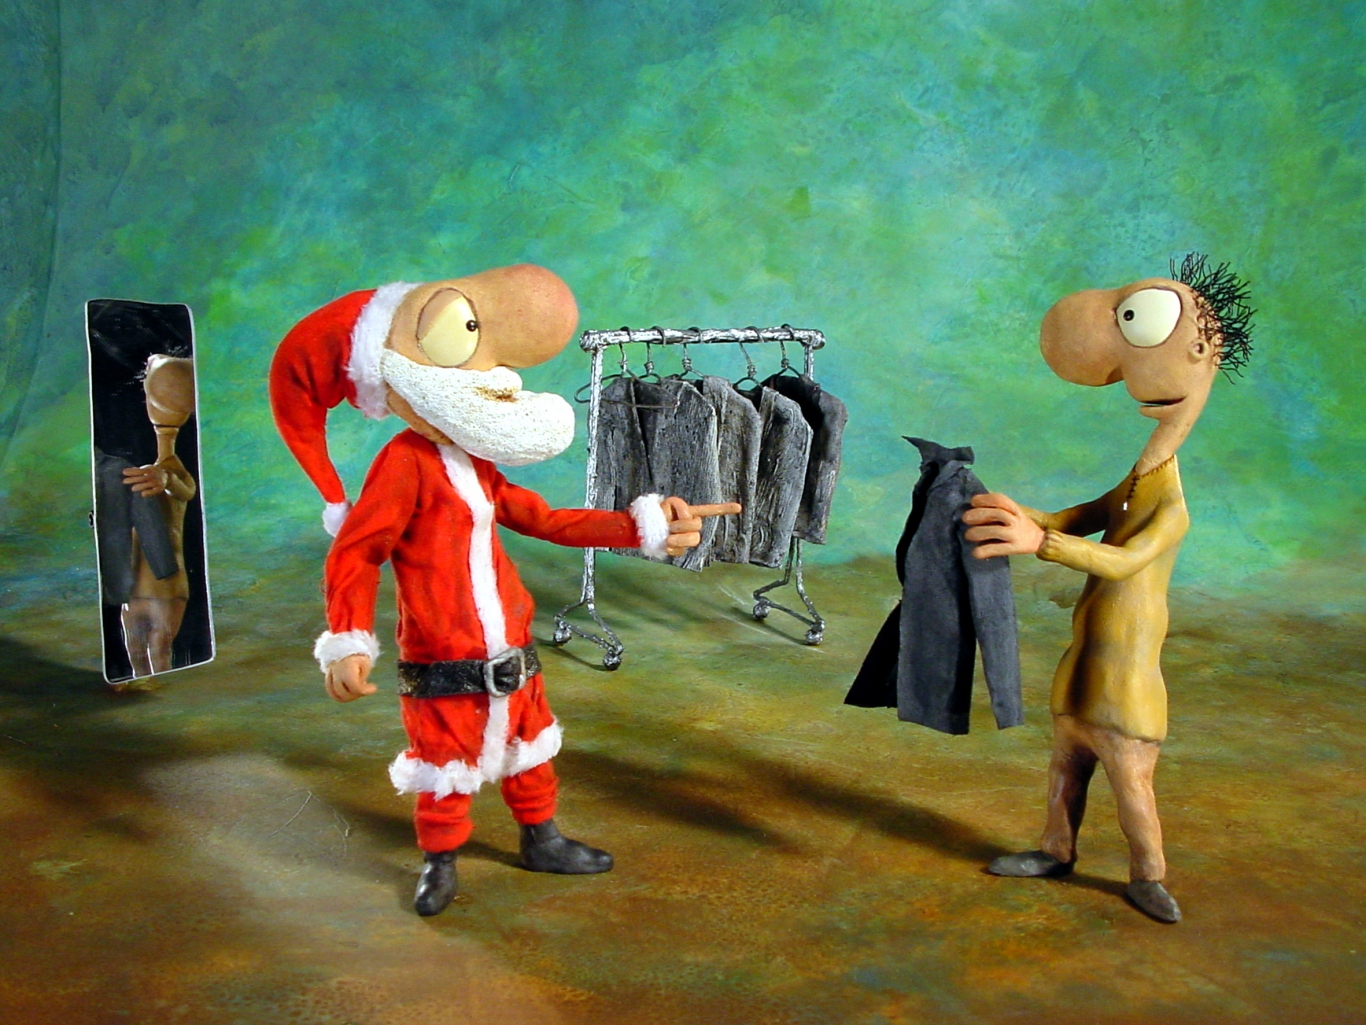 A slim Leunig style santa clause stands in front of a man holding up a jacket to try on